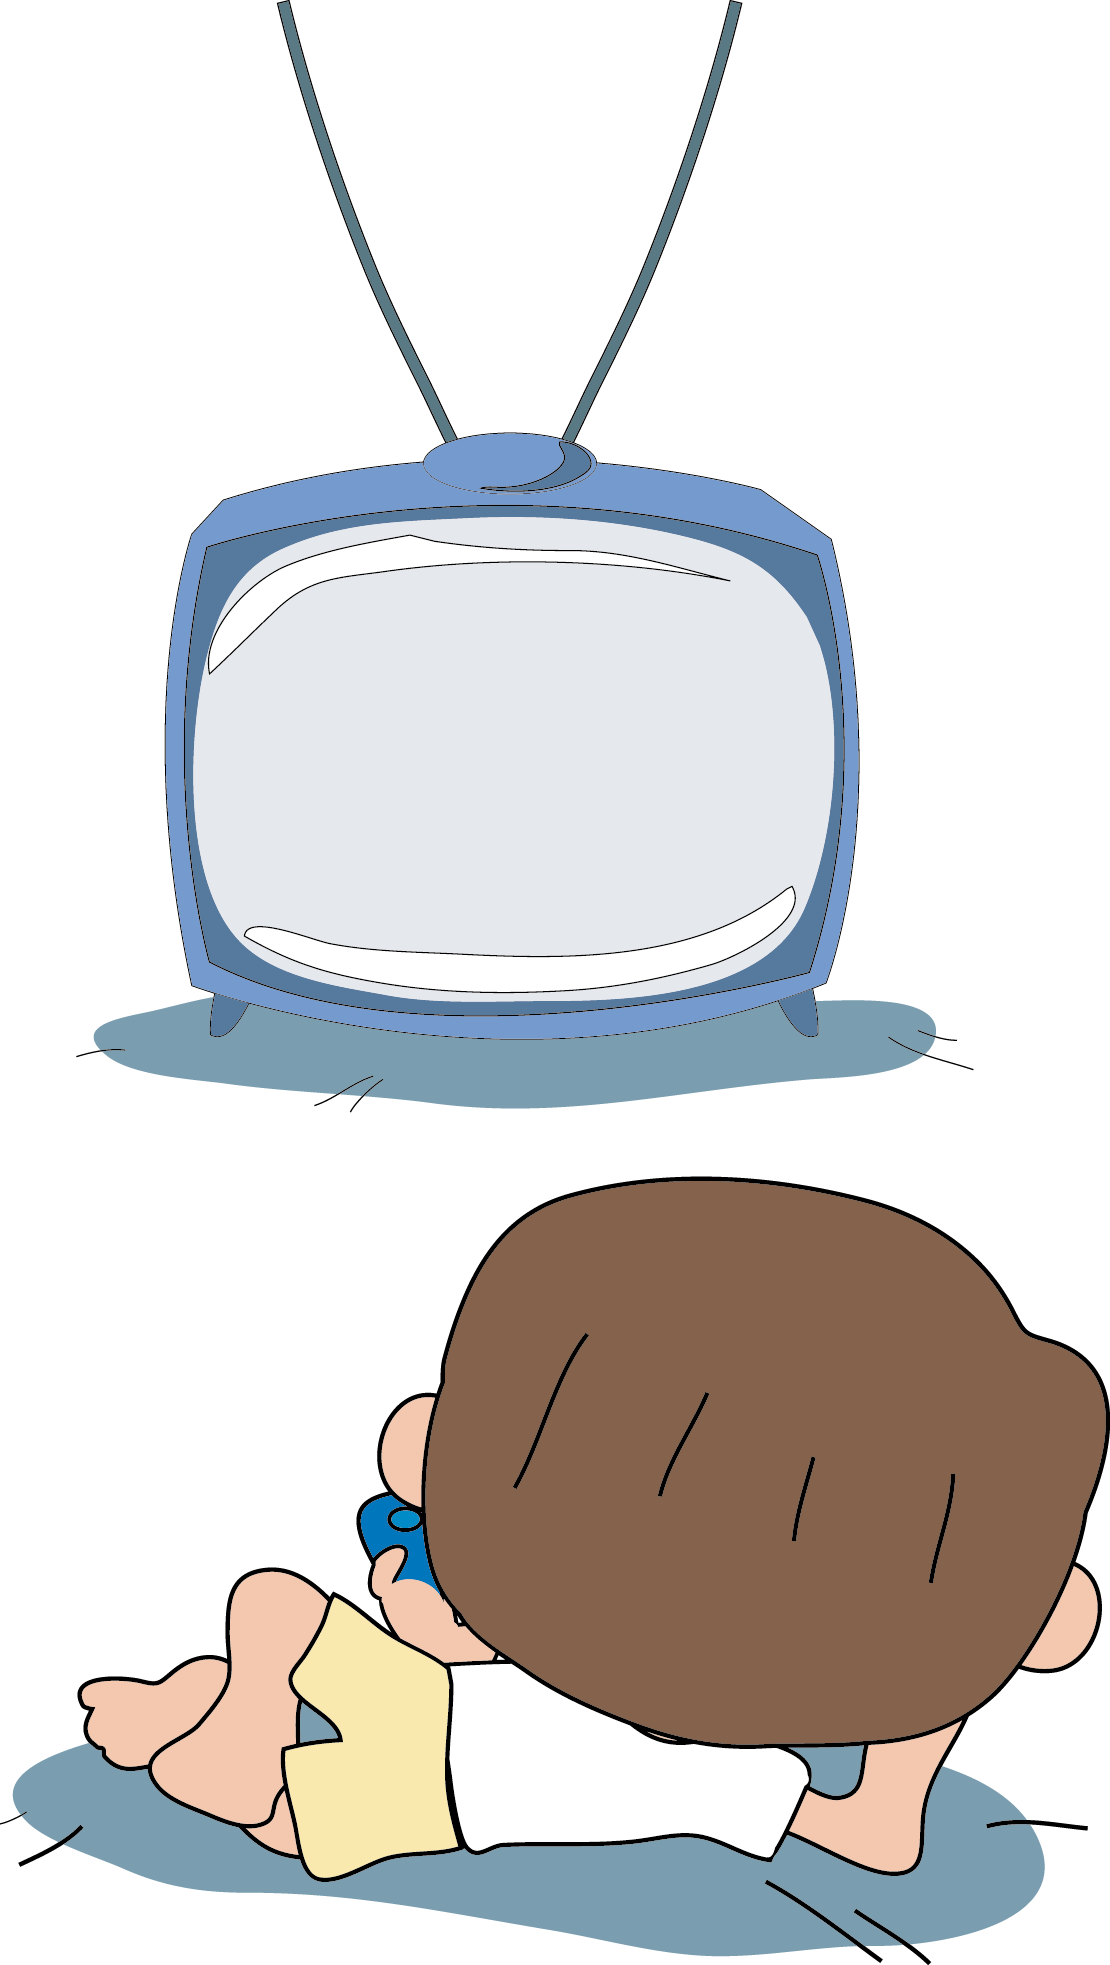 Watching football clipart